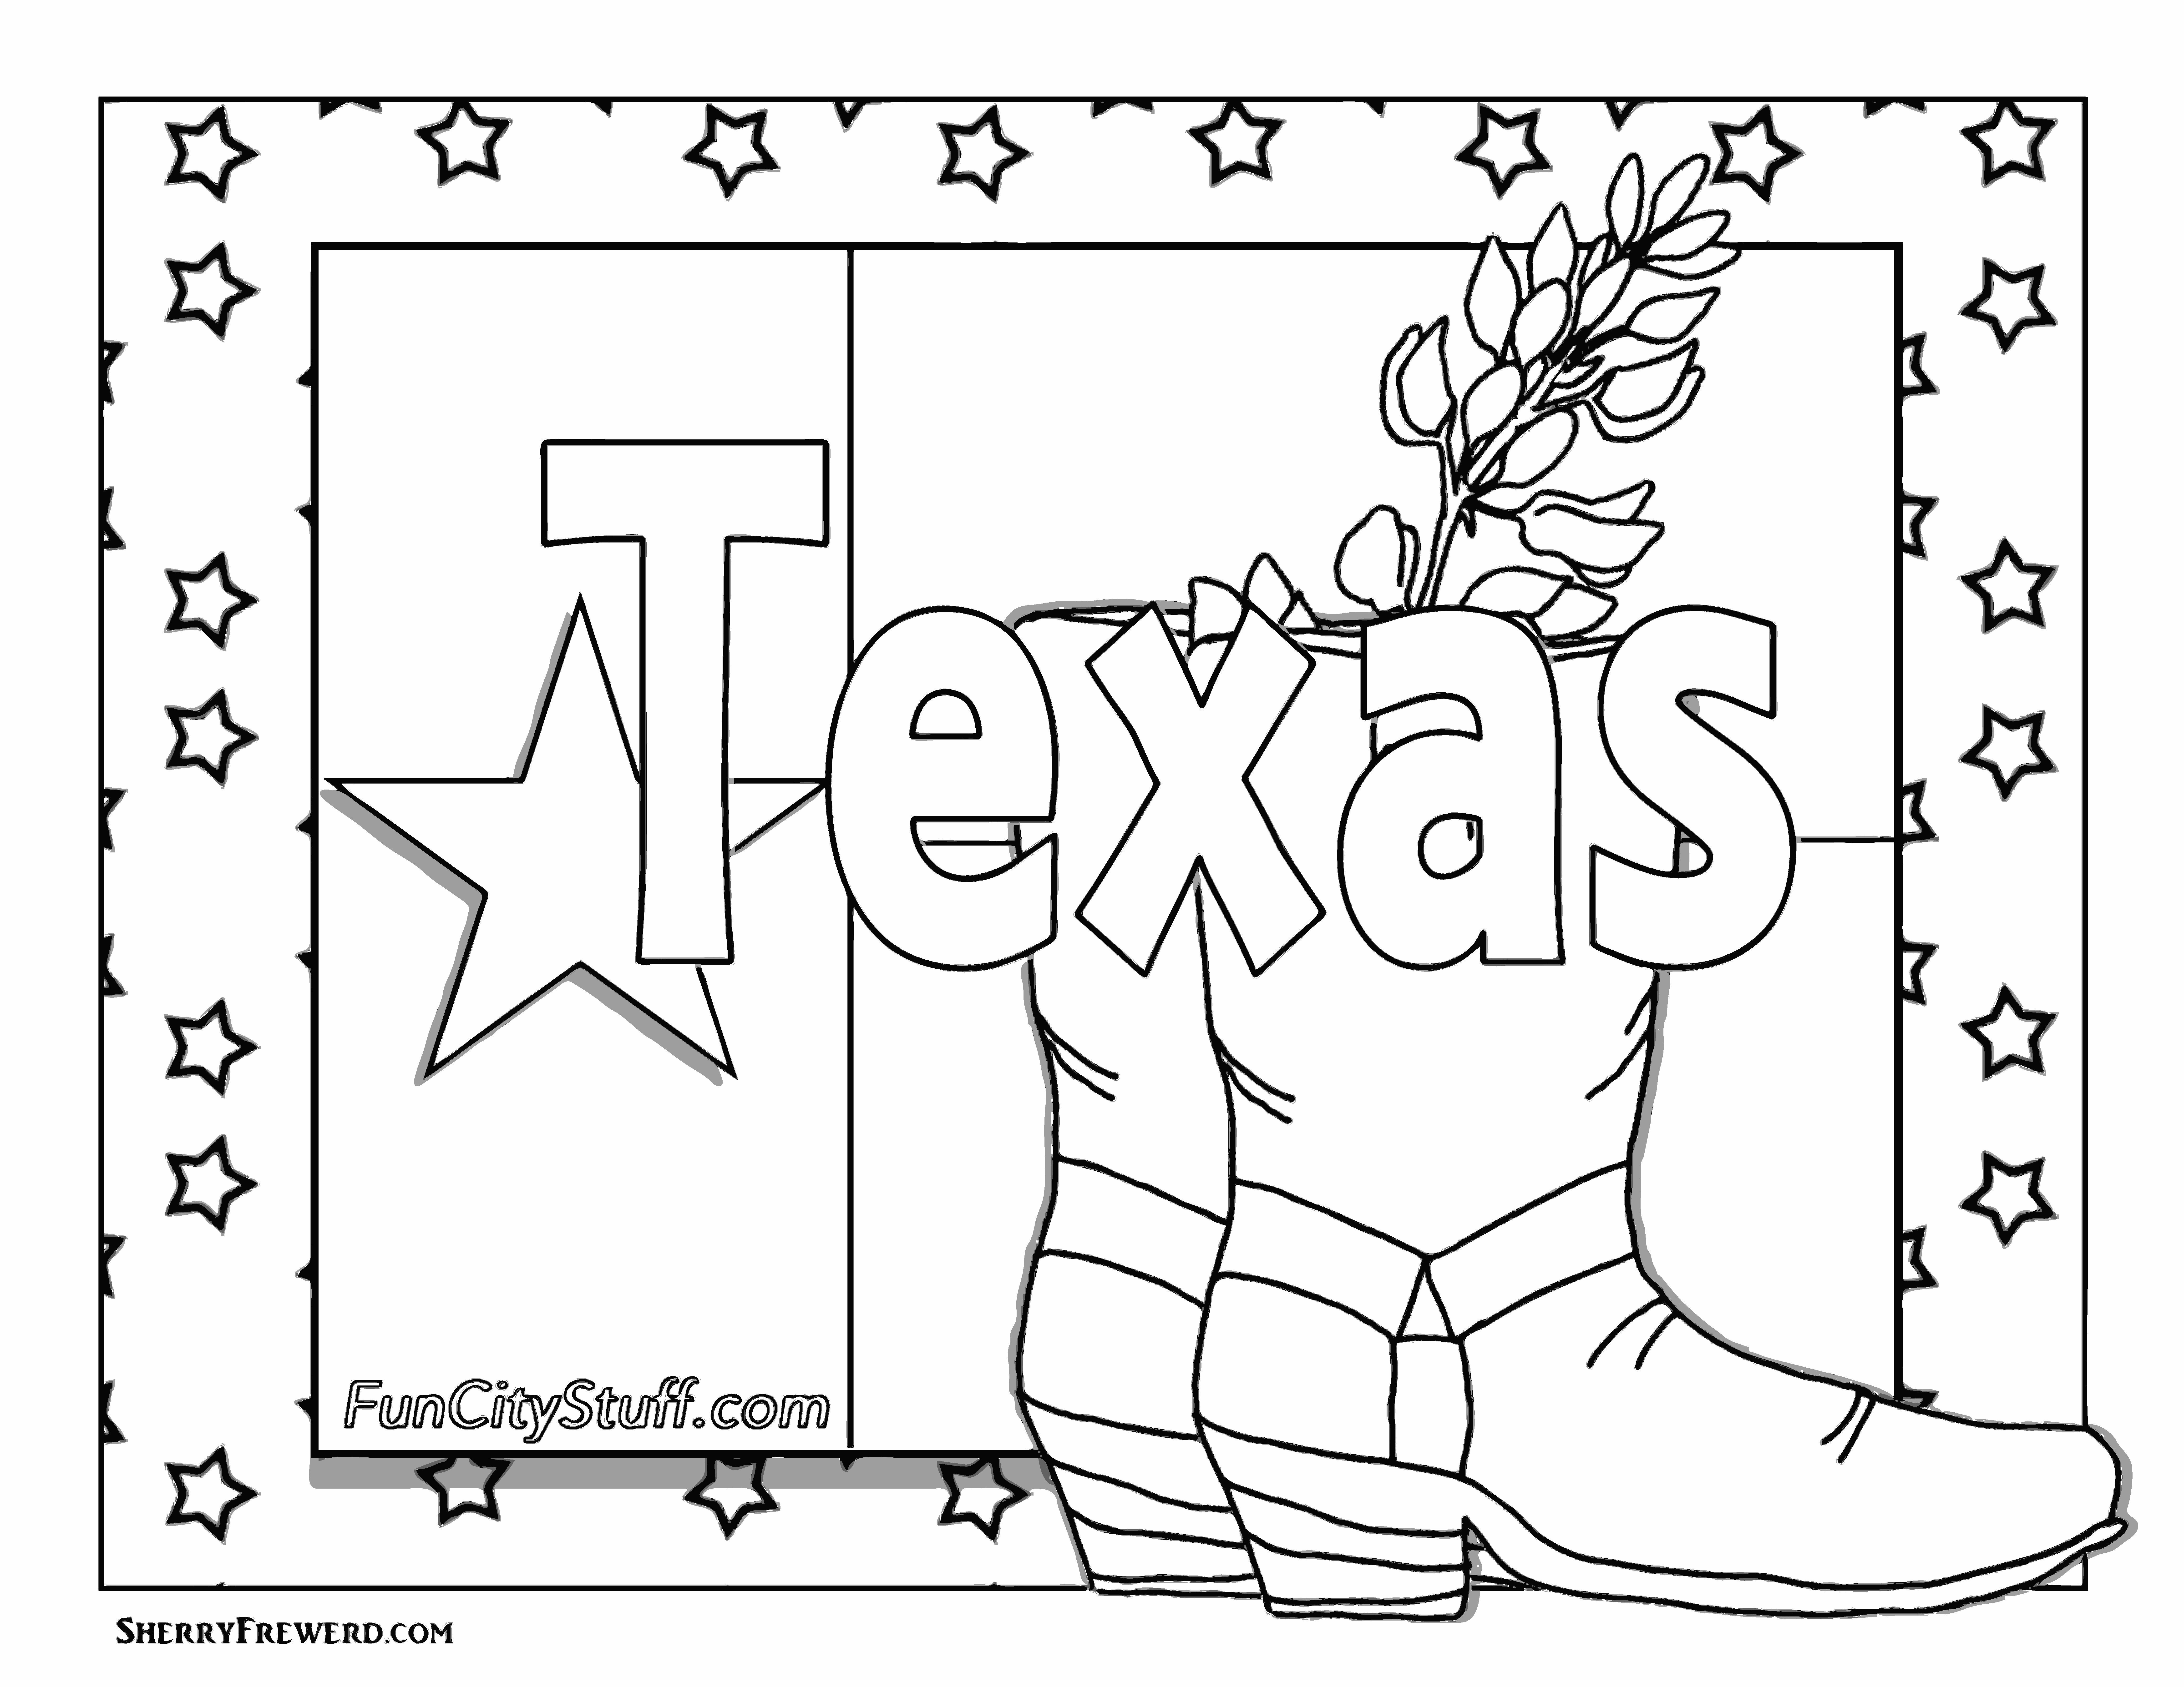 Texas Coloring Book Pages Download – Free Coloring Sheets